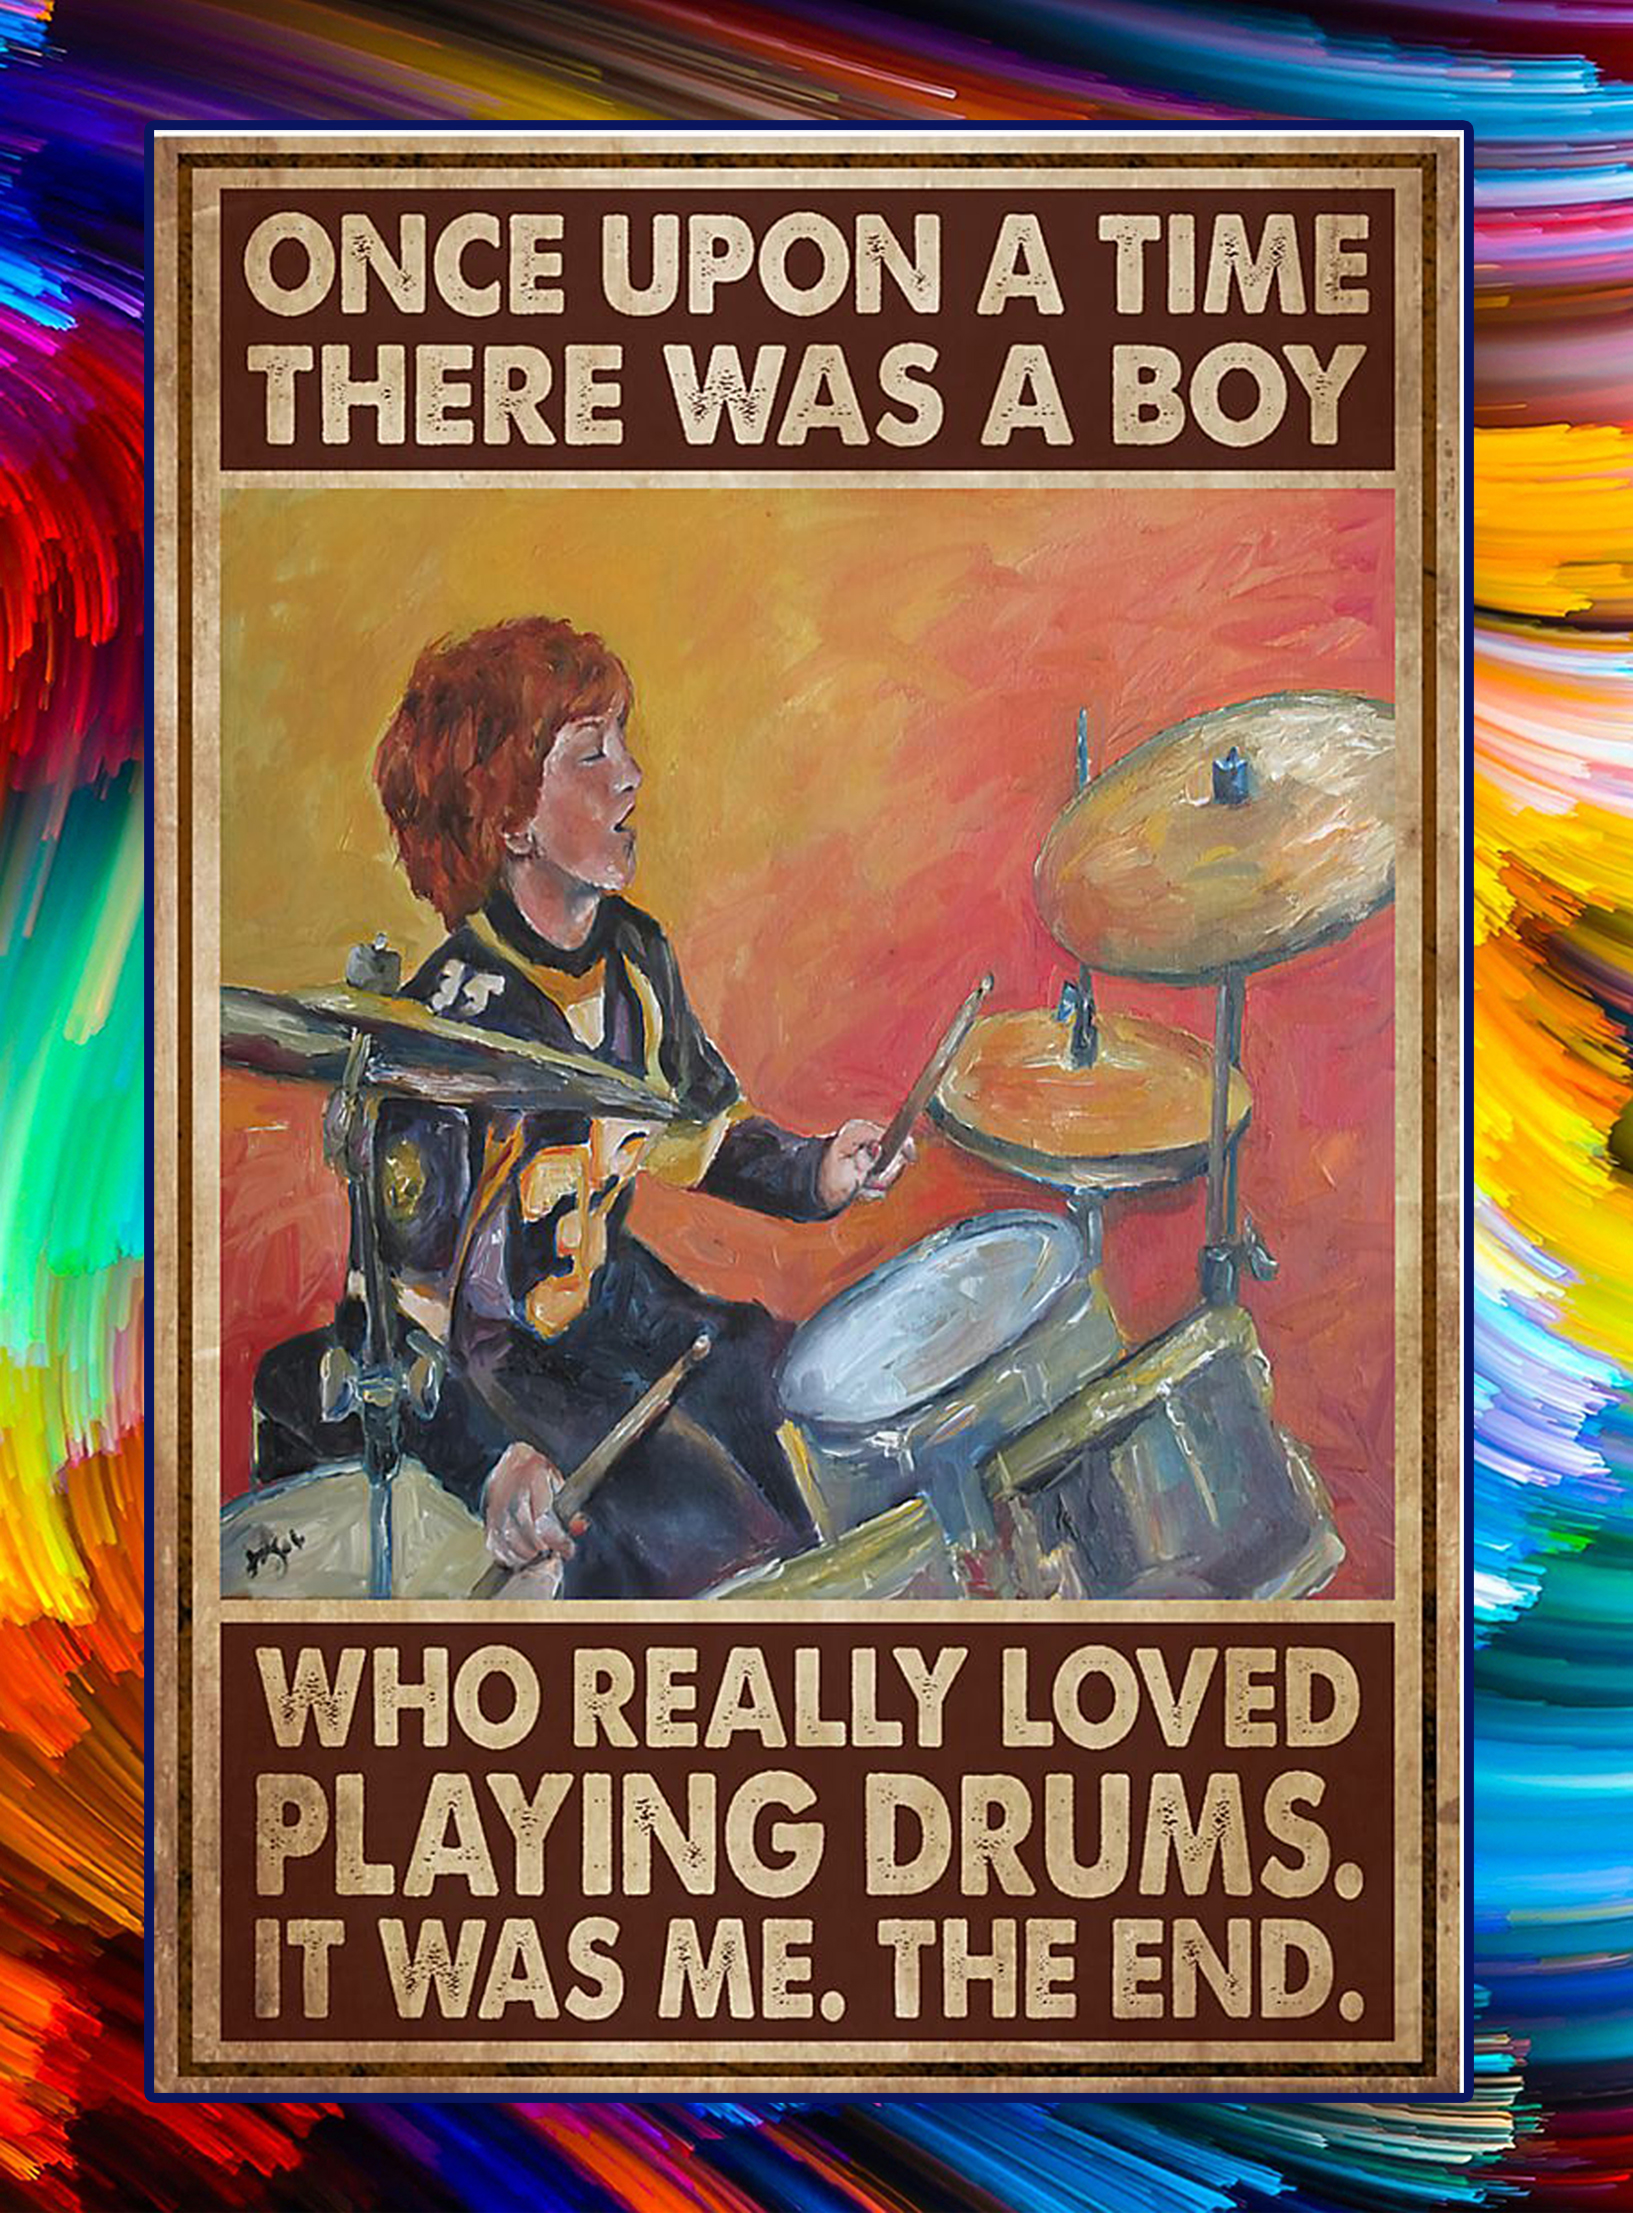 Once upon a time there was a boy who really loved playing drums poster - A2